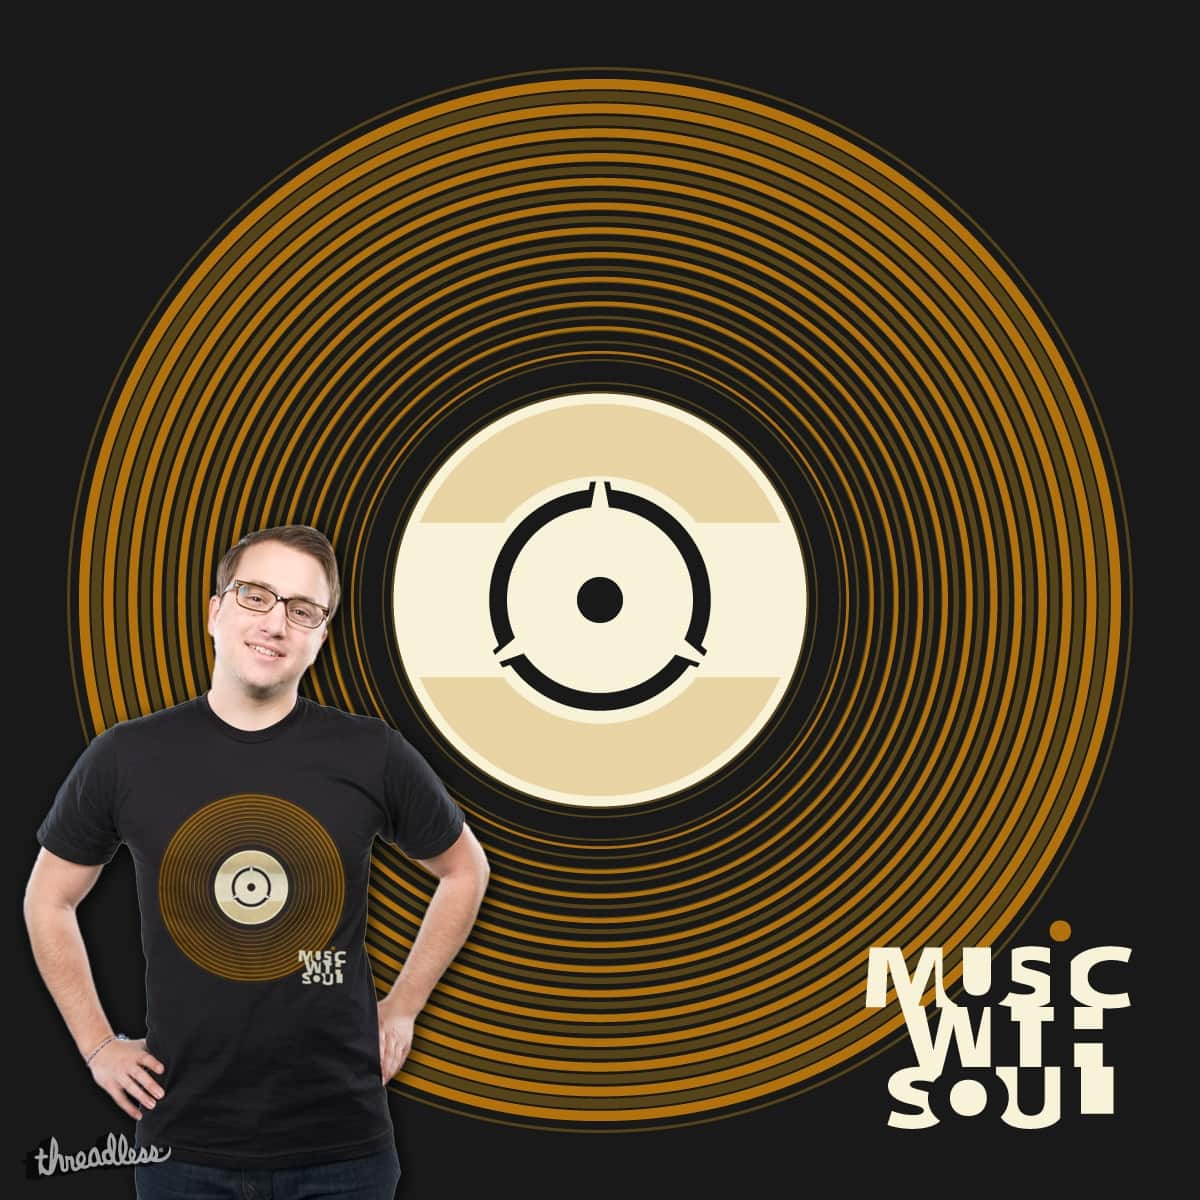 Music with Soul by vd_design on Threadless